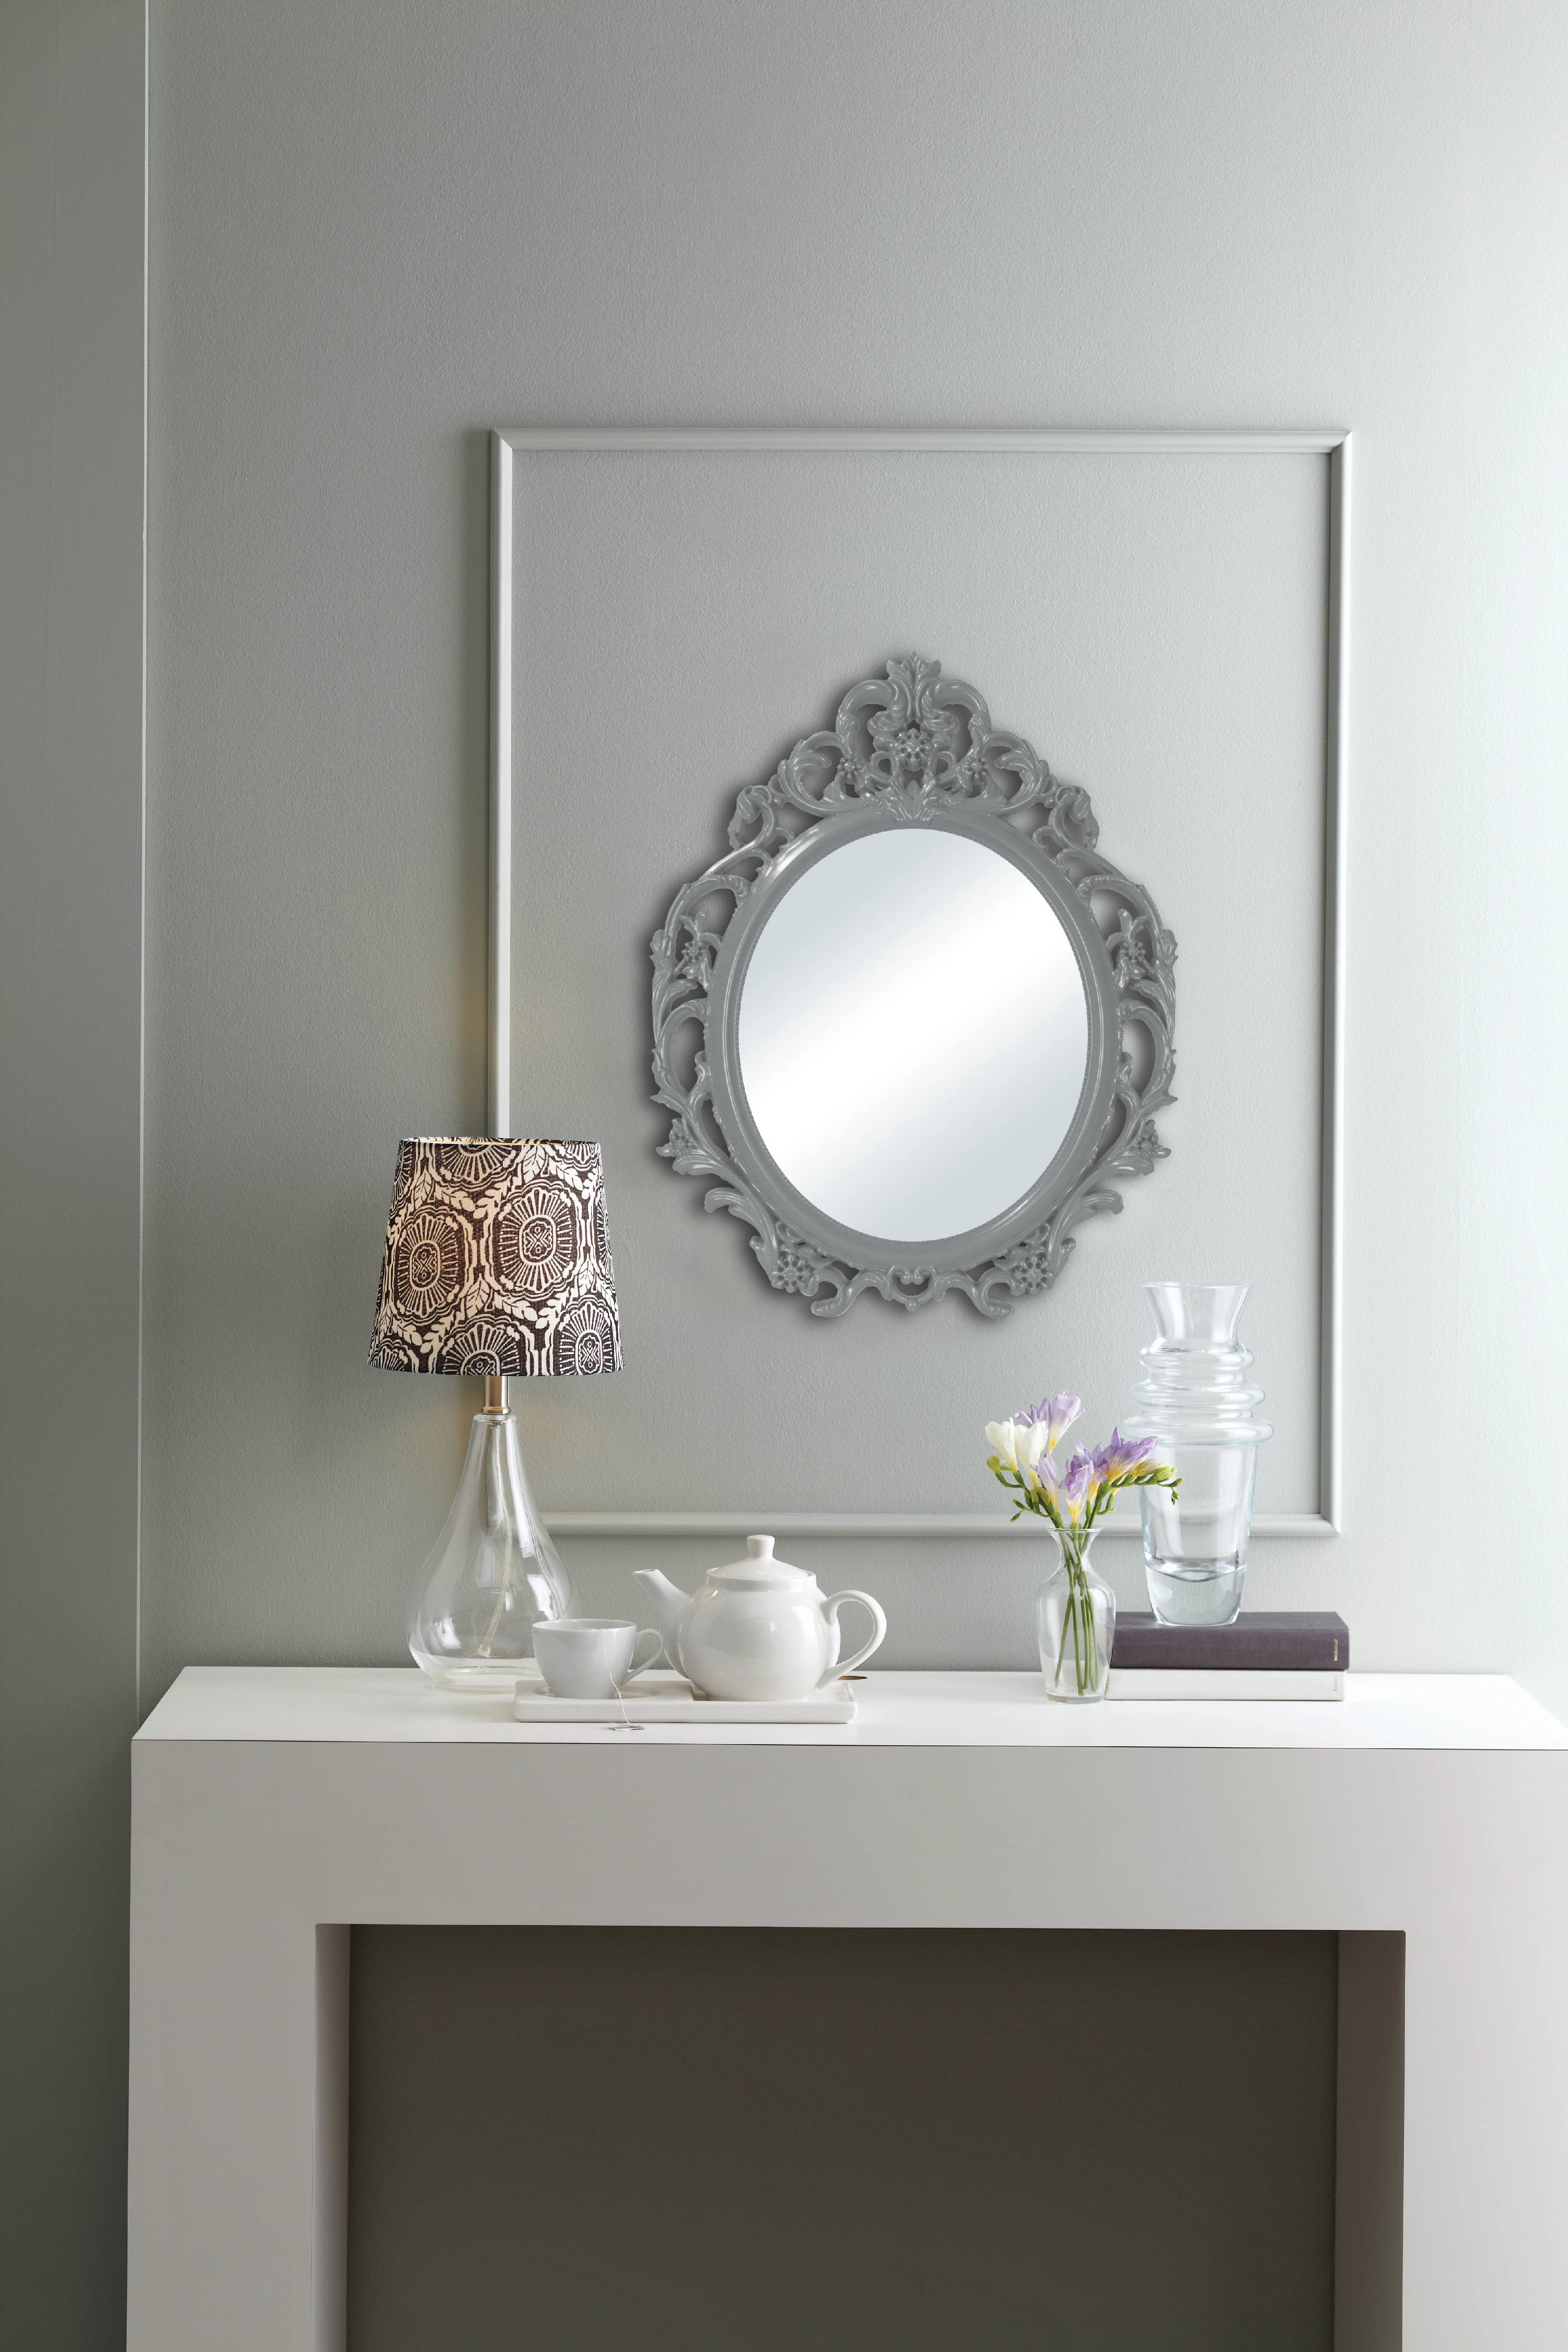 Better Homes and Gardens Ornate Baroque Wall Mirror by Columbia Frame